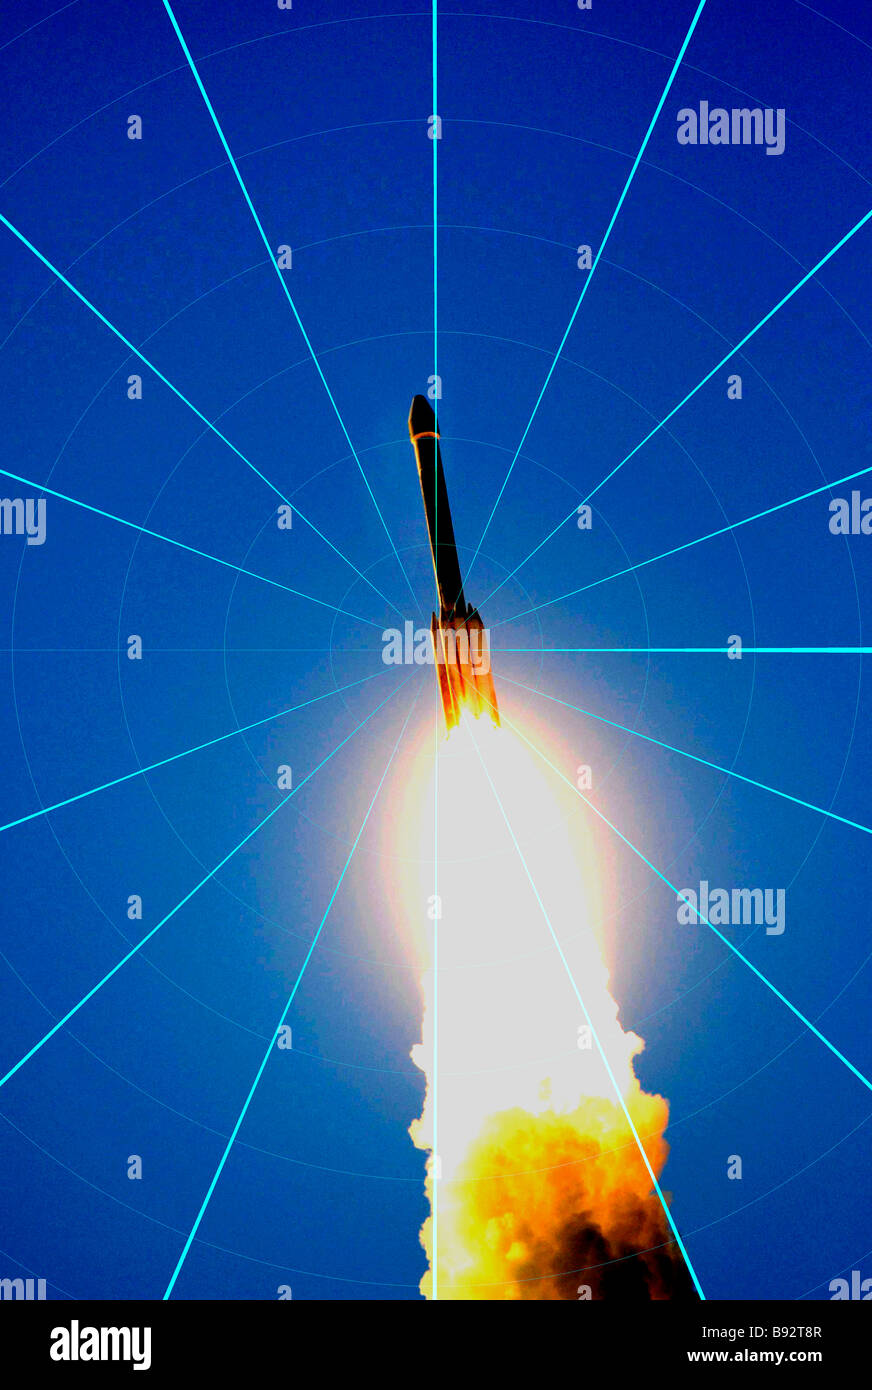 Rocket Launch Stock Photos & Rocket Launch Stock Images - Alamy